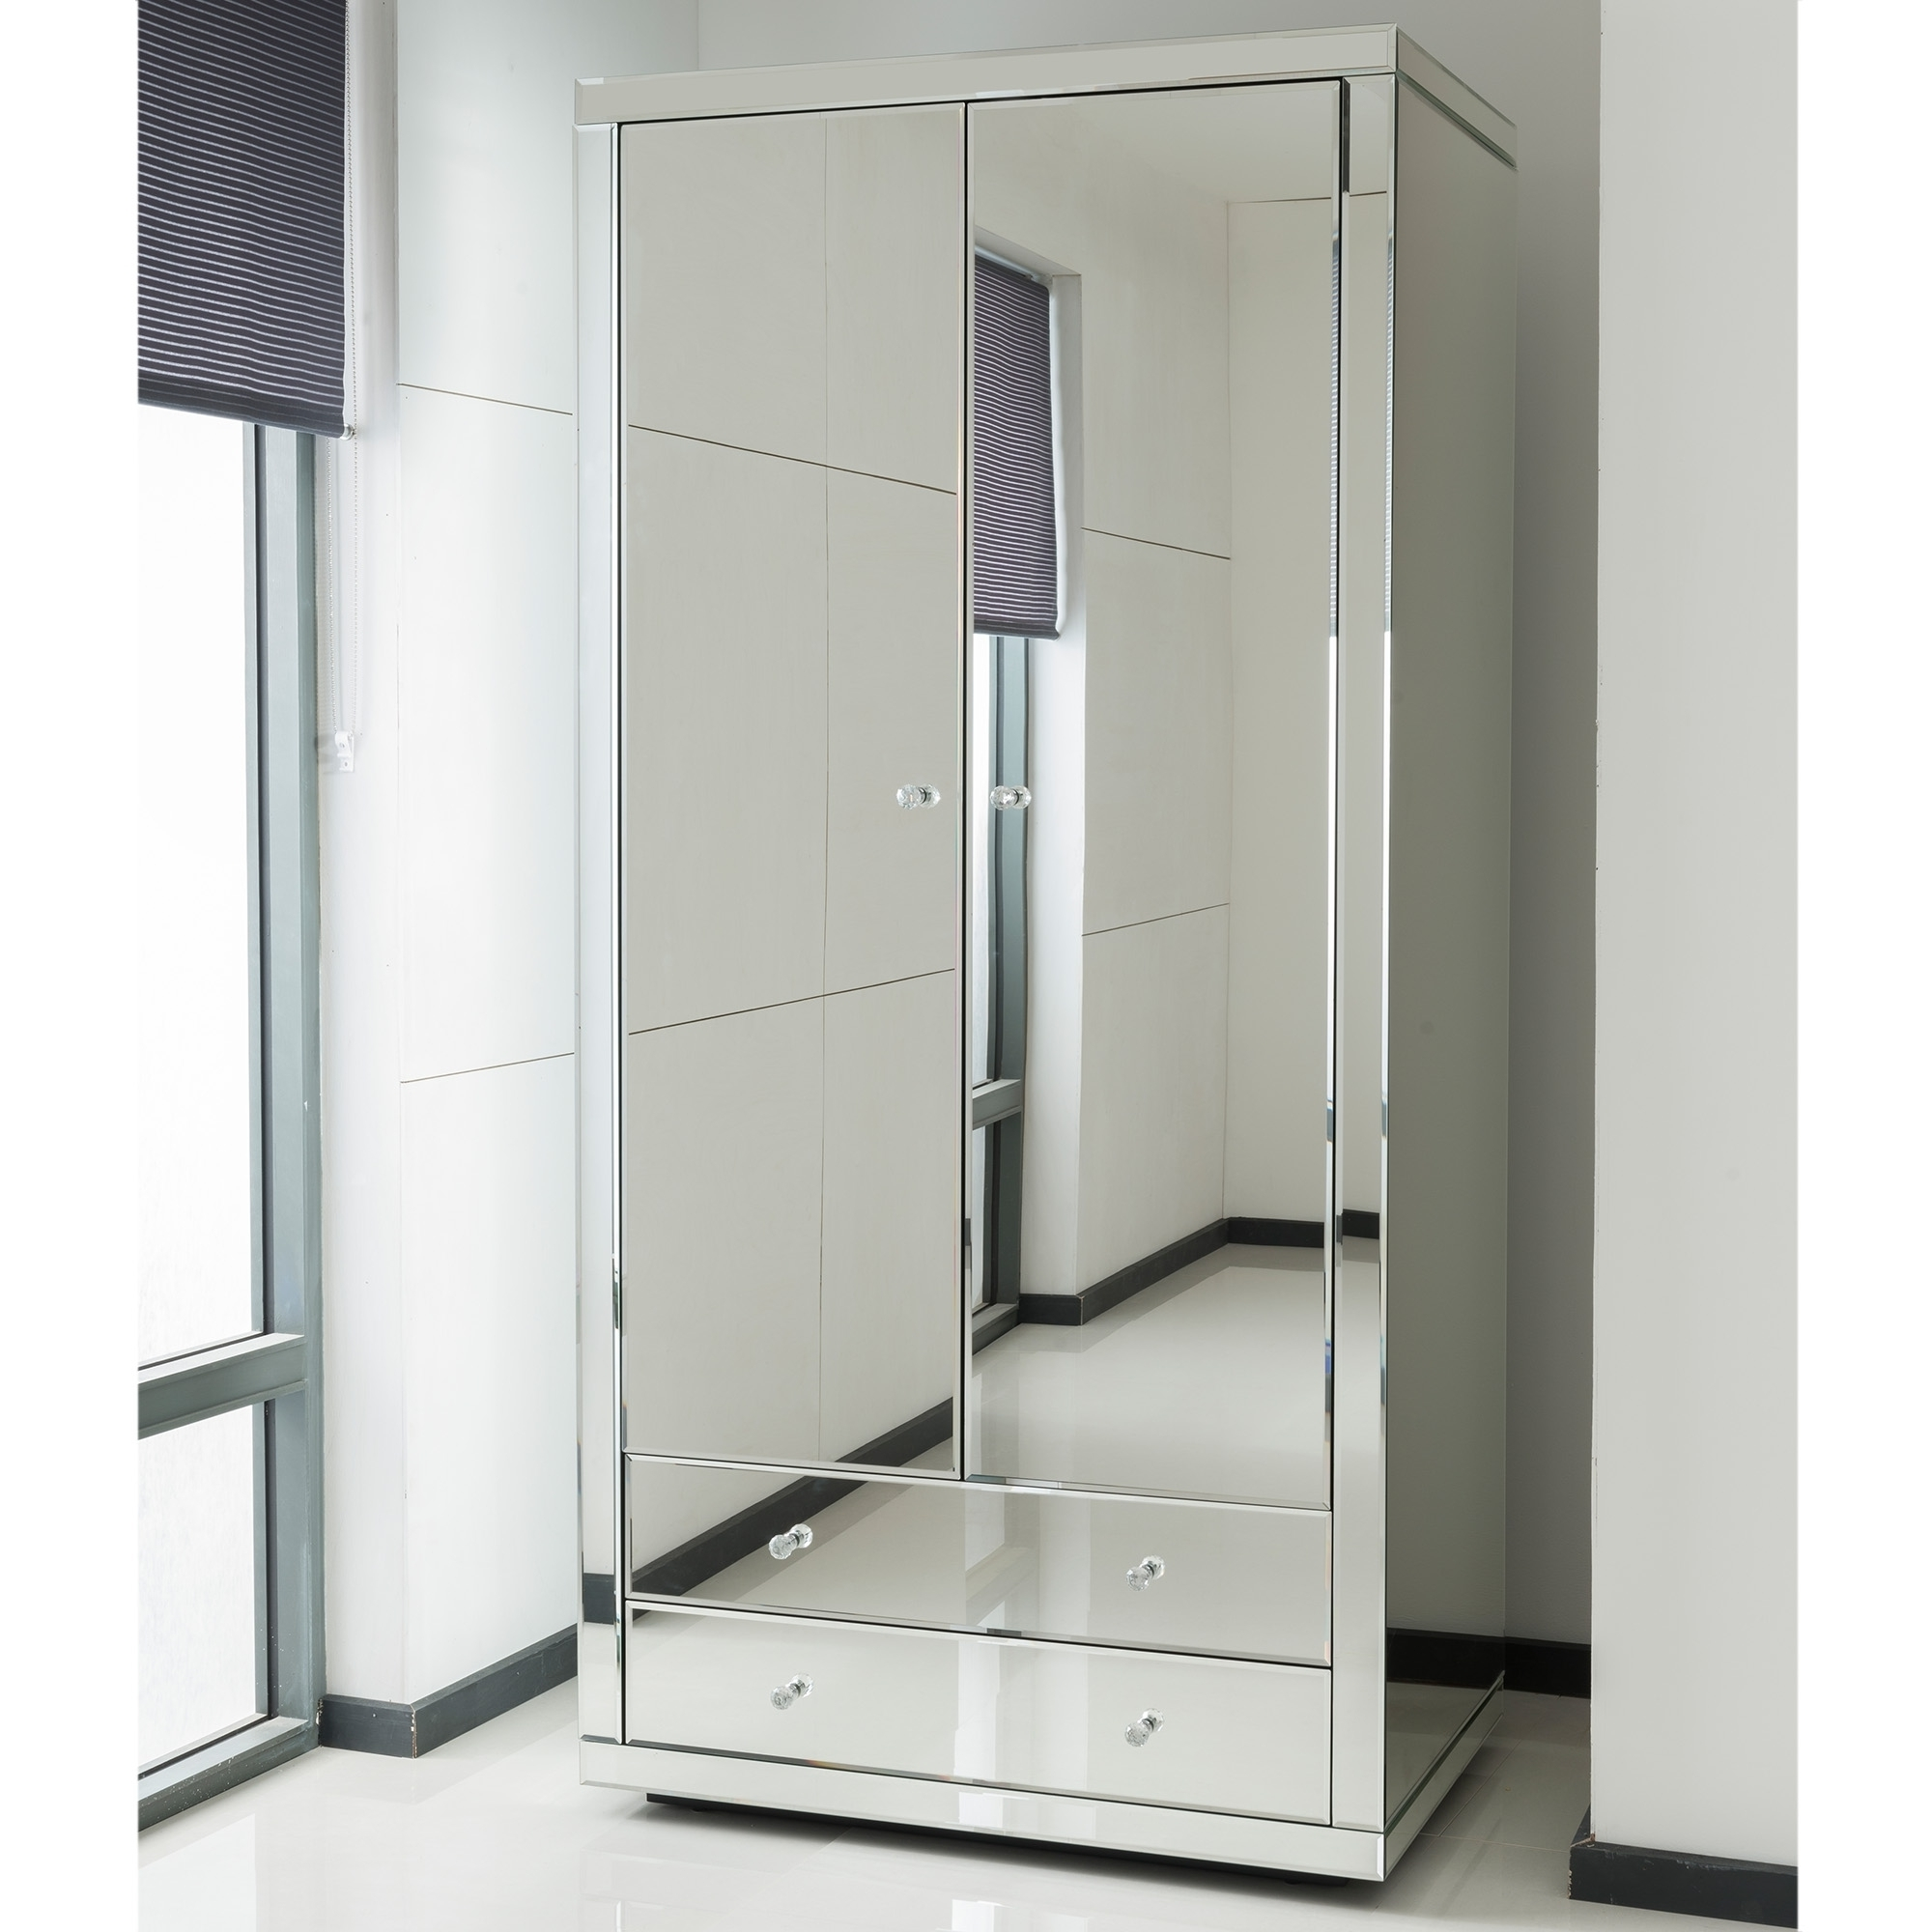 Fashionable Double Mirrored Wardrobes With Regard To 3 Door Mirrored Wardrobe – Mirrored Wardrobe Designs For Your (View 7 of 15)